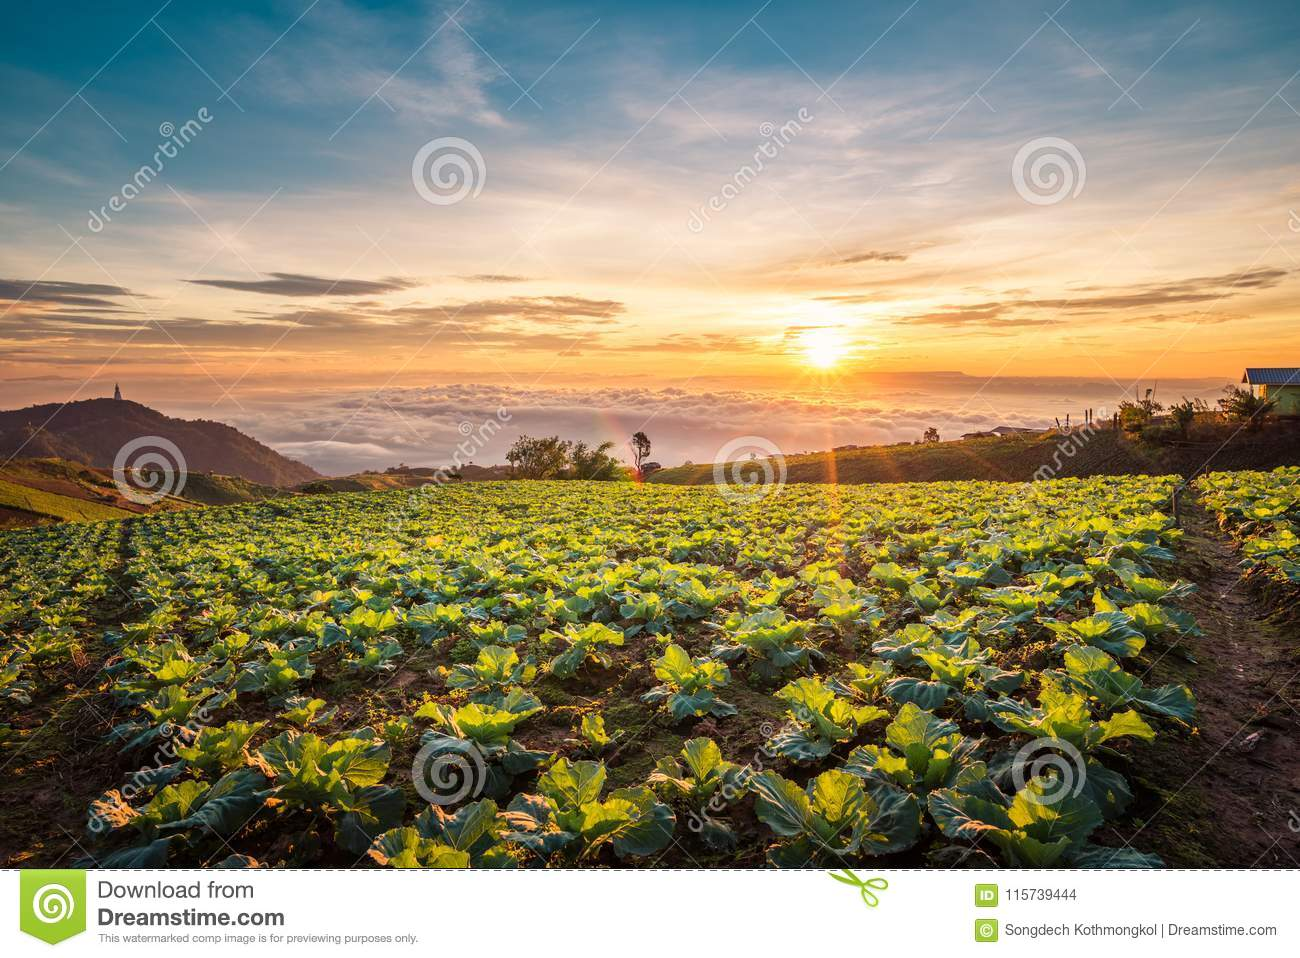 The Scene of Thailand about Big Cabbage farm on the mountain, Ph